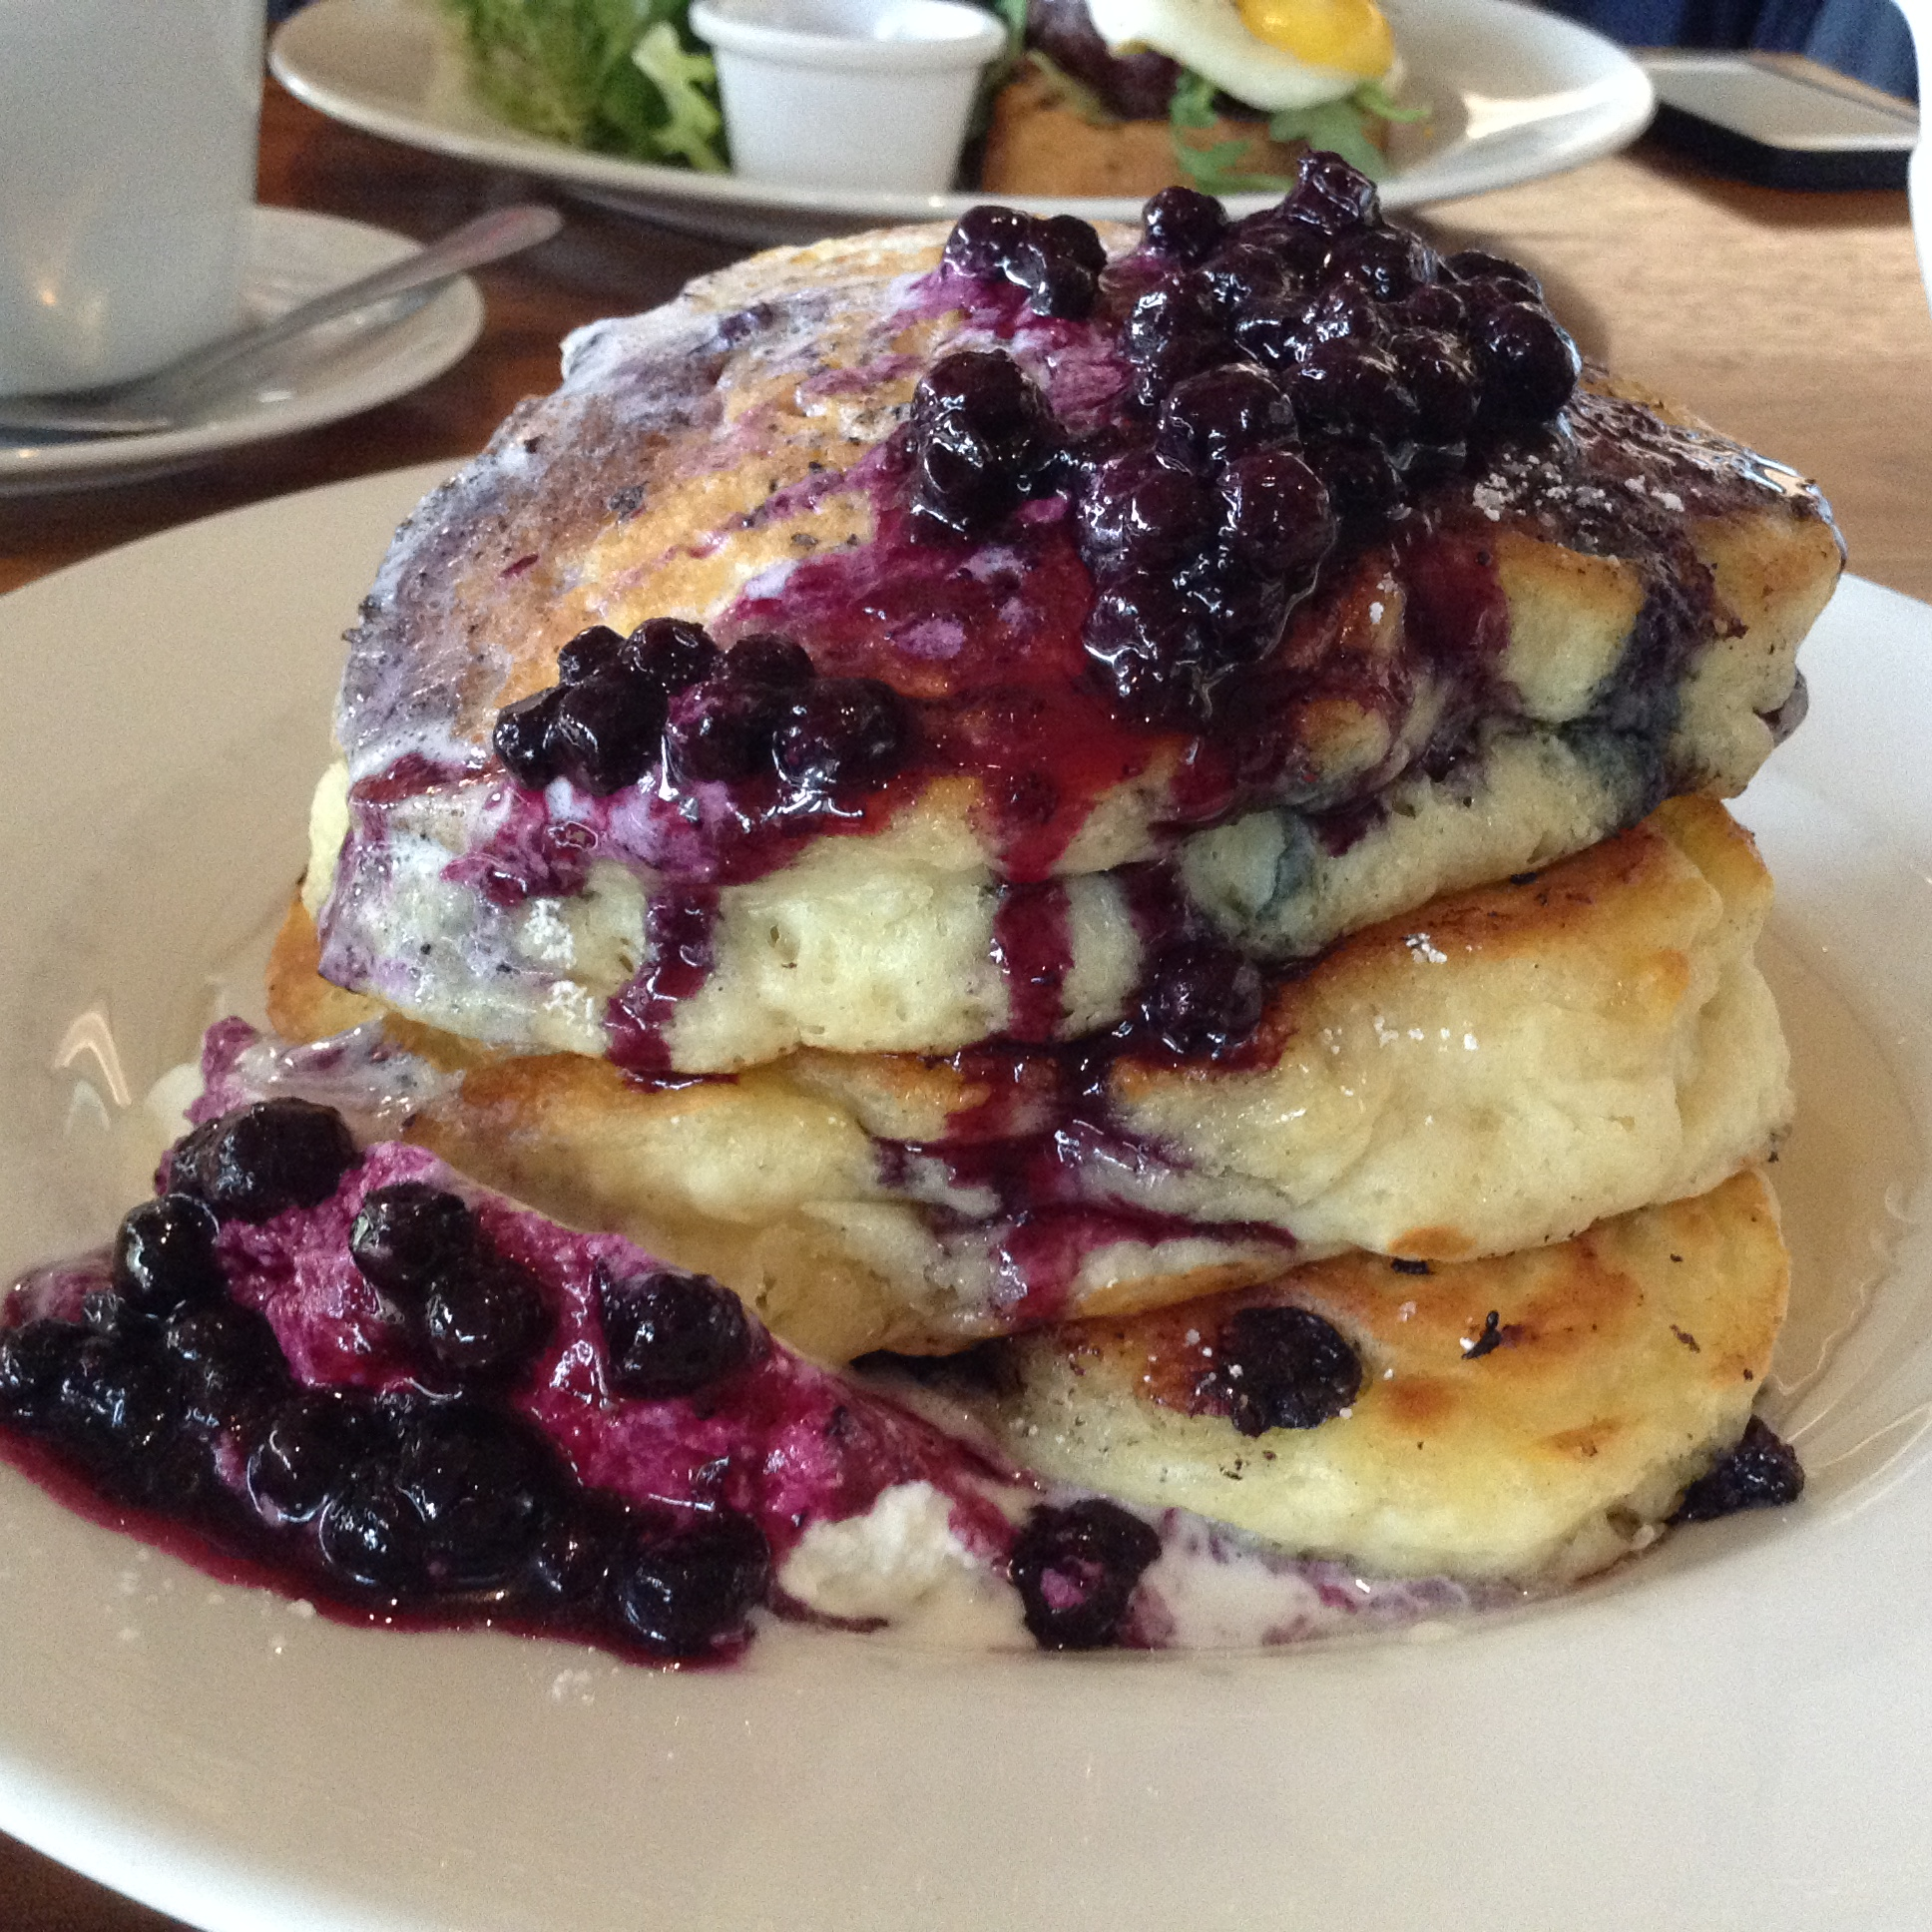 Mrs. Biederhof's Blueberry Buttermilk Pancakes